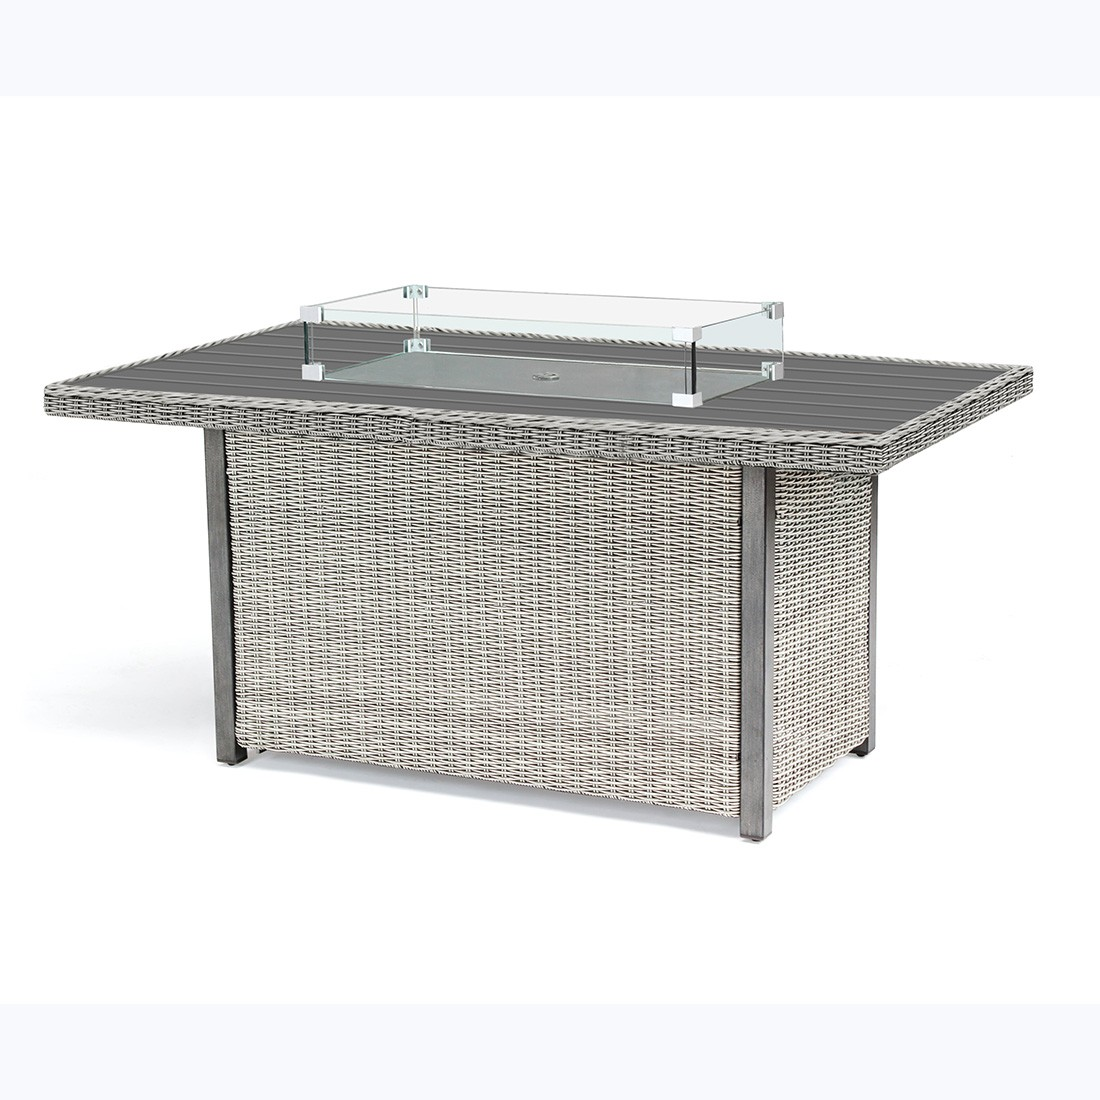 Kettler Palma Fire Pit Table with Aluminium Top - White Wash